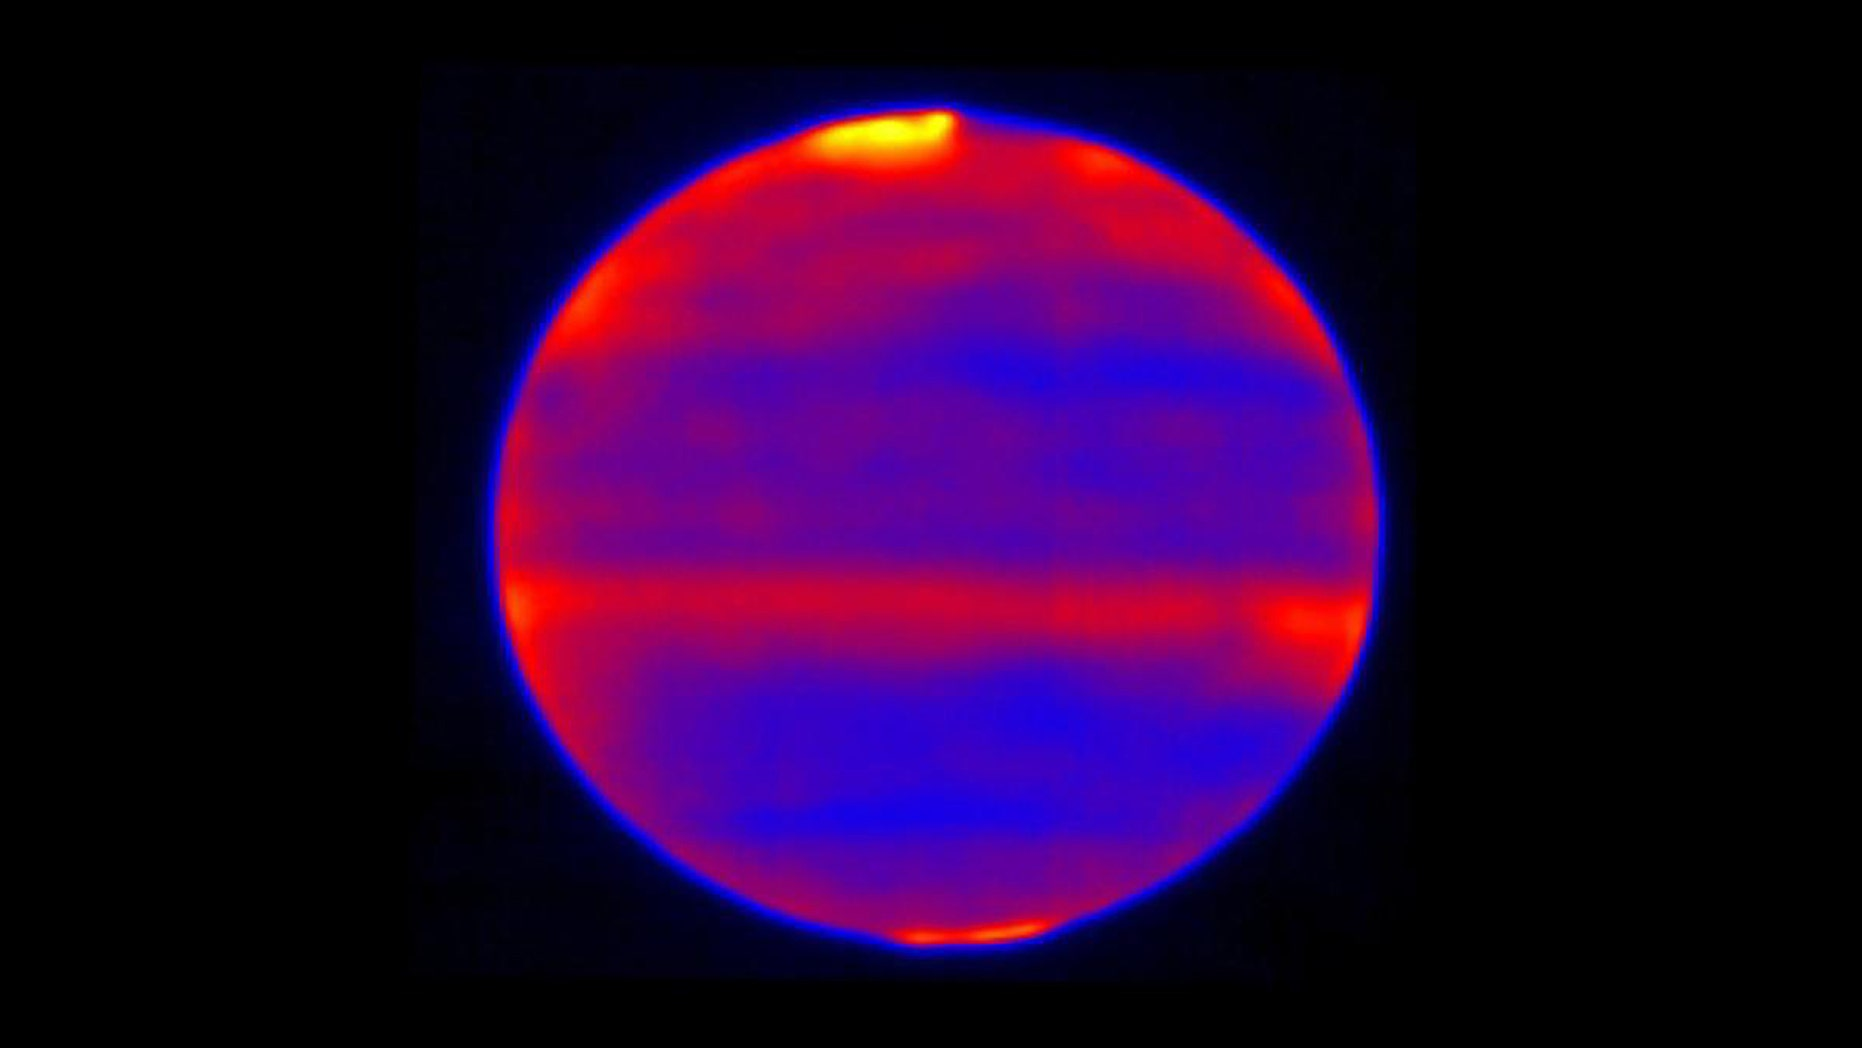 Westlake Legal Group jupiter-lead Jupiter's poles shown heating up in incredible NASA images fox-news/science/jupiter fox-news/science/air-and-space/sun fox-news/science/air-and-space/nasa fox news fnc/science fnc ddb859fd-b3ae-5200-a588-0071bc044f15 Chris Ciaccia article